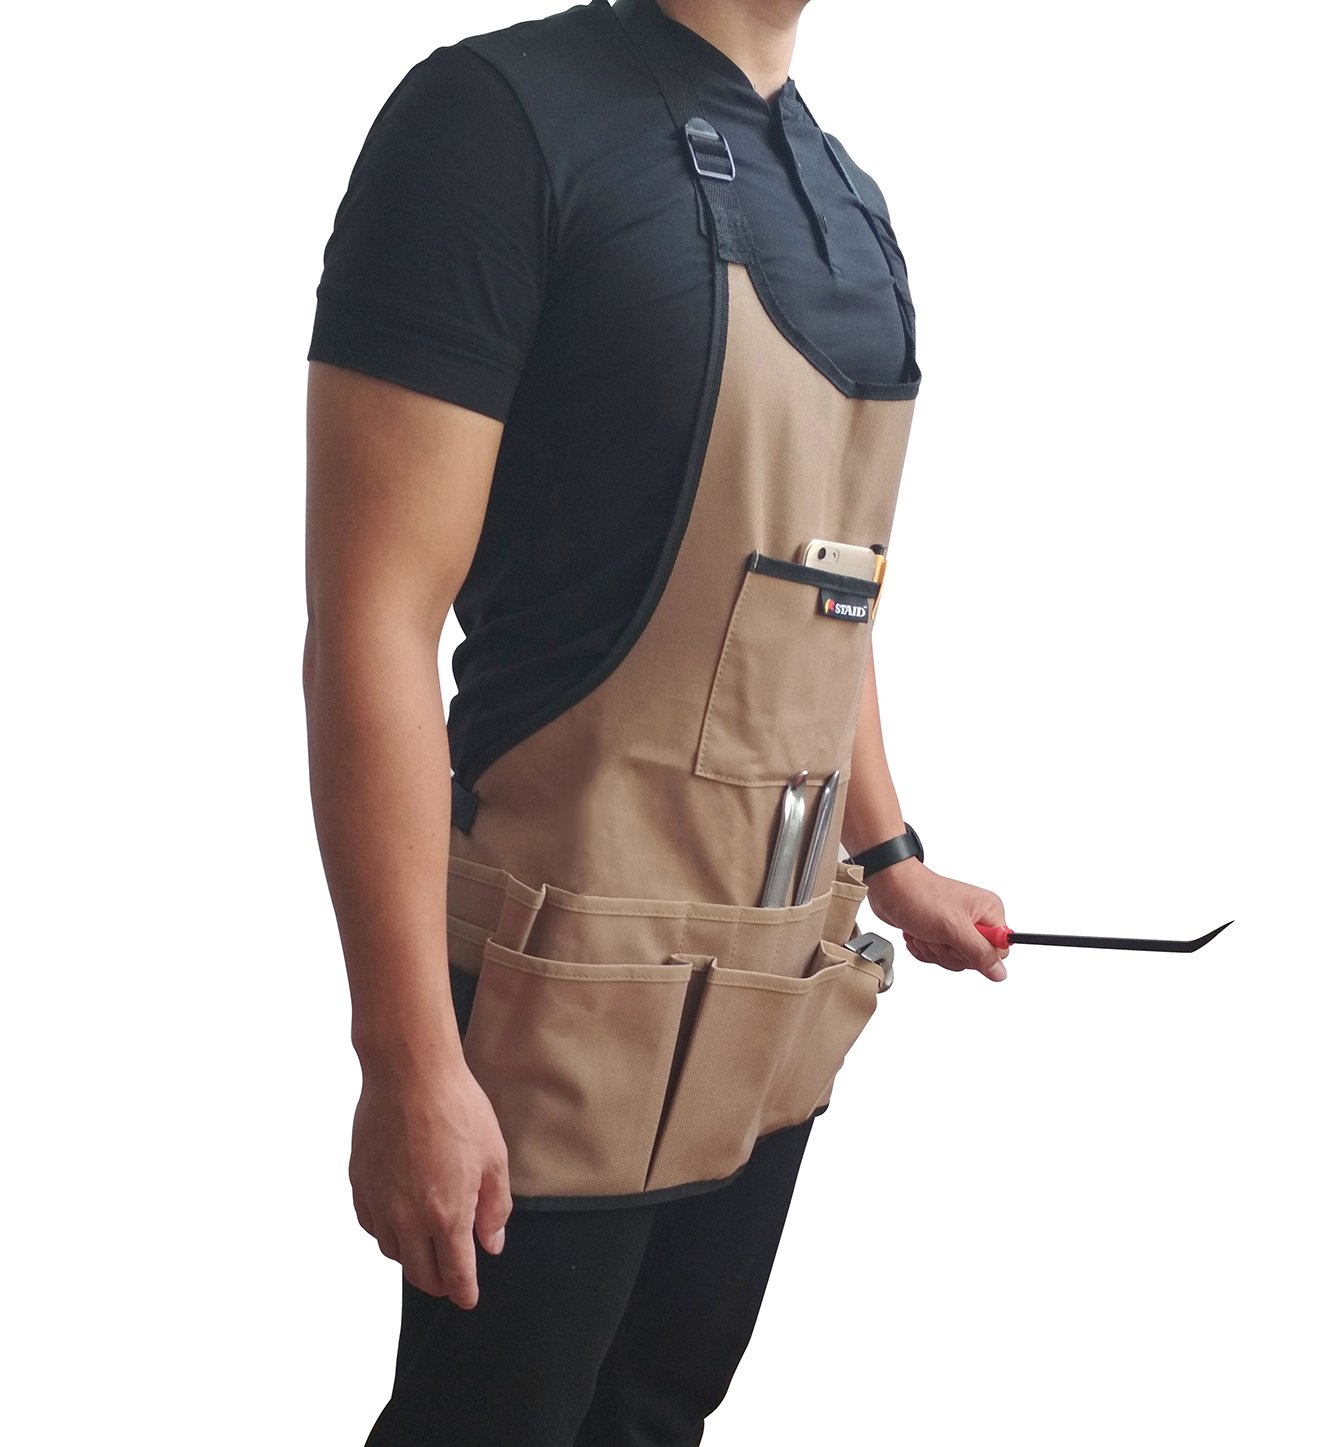 Tebery 600D Oxford Cloth Heavy Duty Work Apron, Adjustable and Durable Tool Aprons - Khaki by Tebery (Image #6)